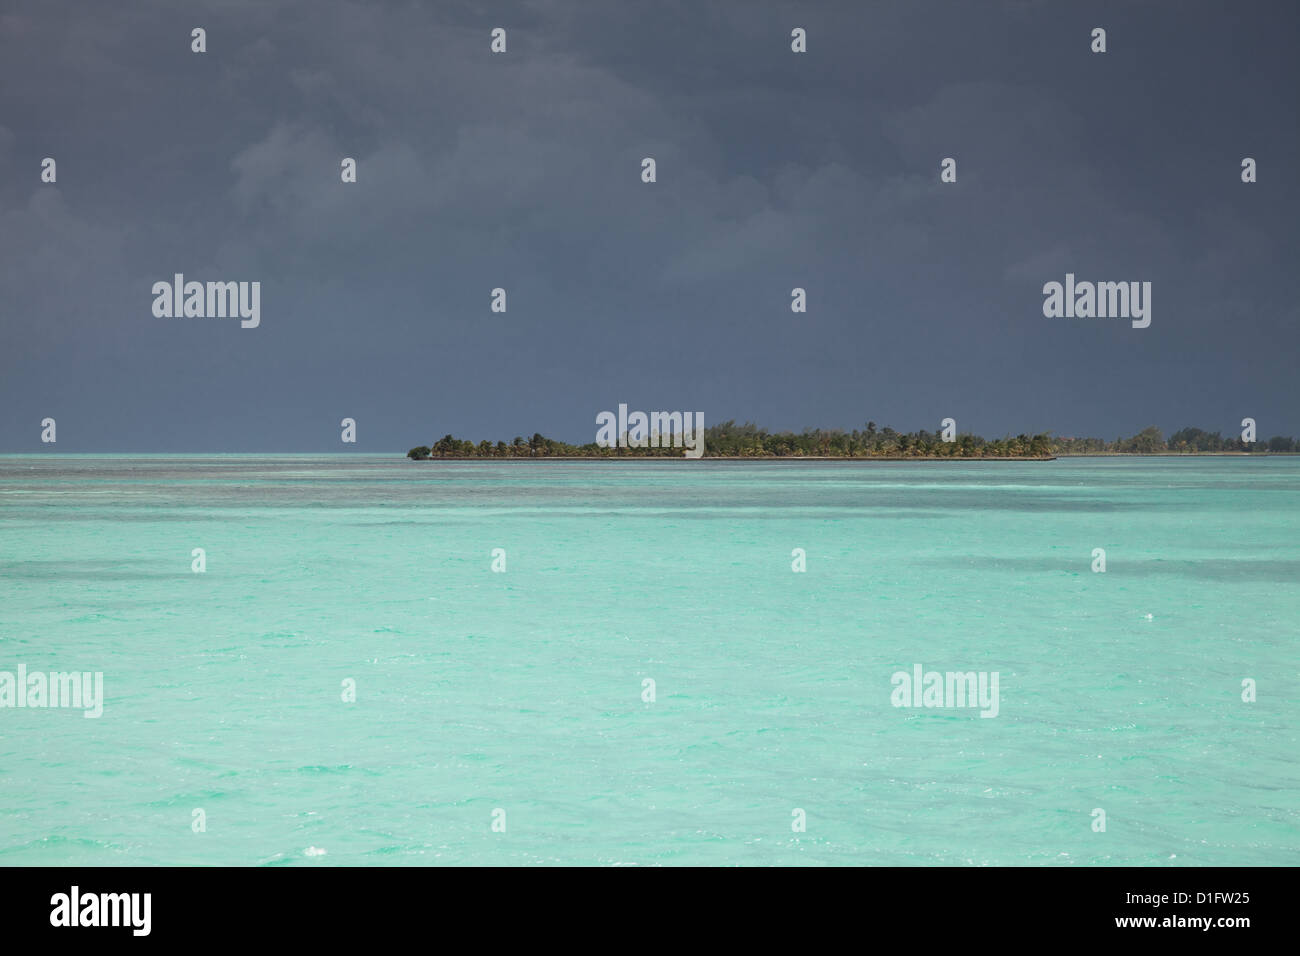 Black skies from a huge storm over the clear turquoise waters of the Caribbean near Belize. - Stock Image